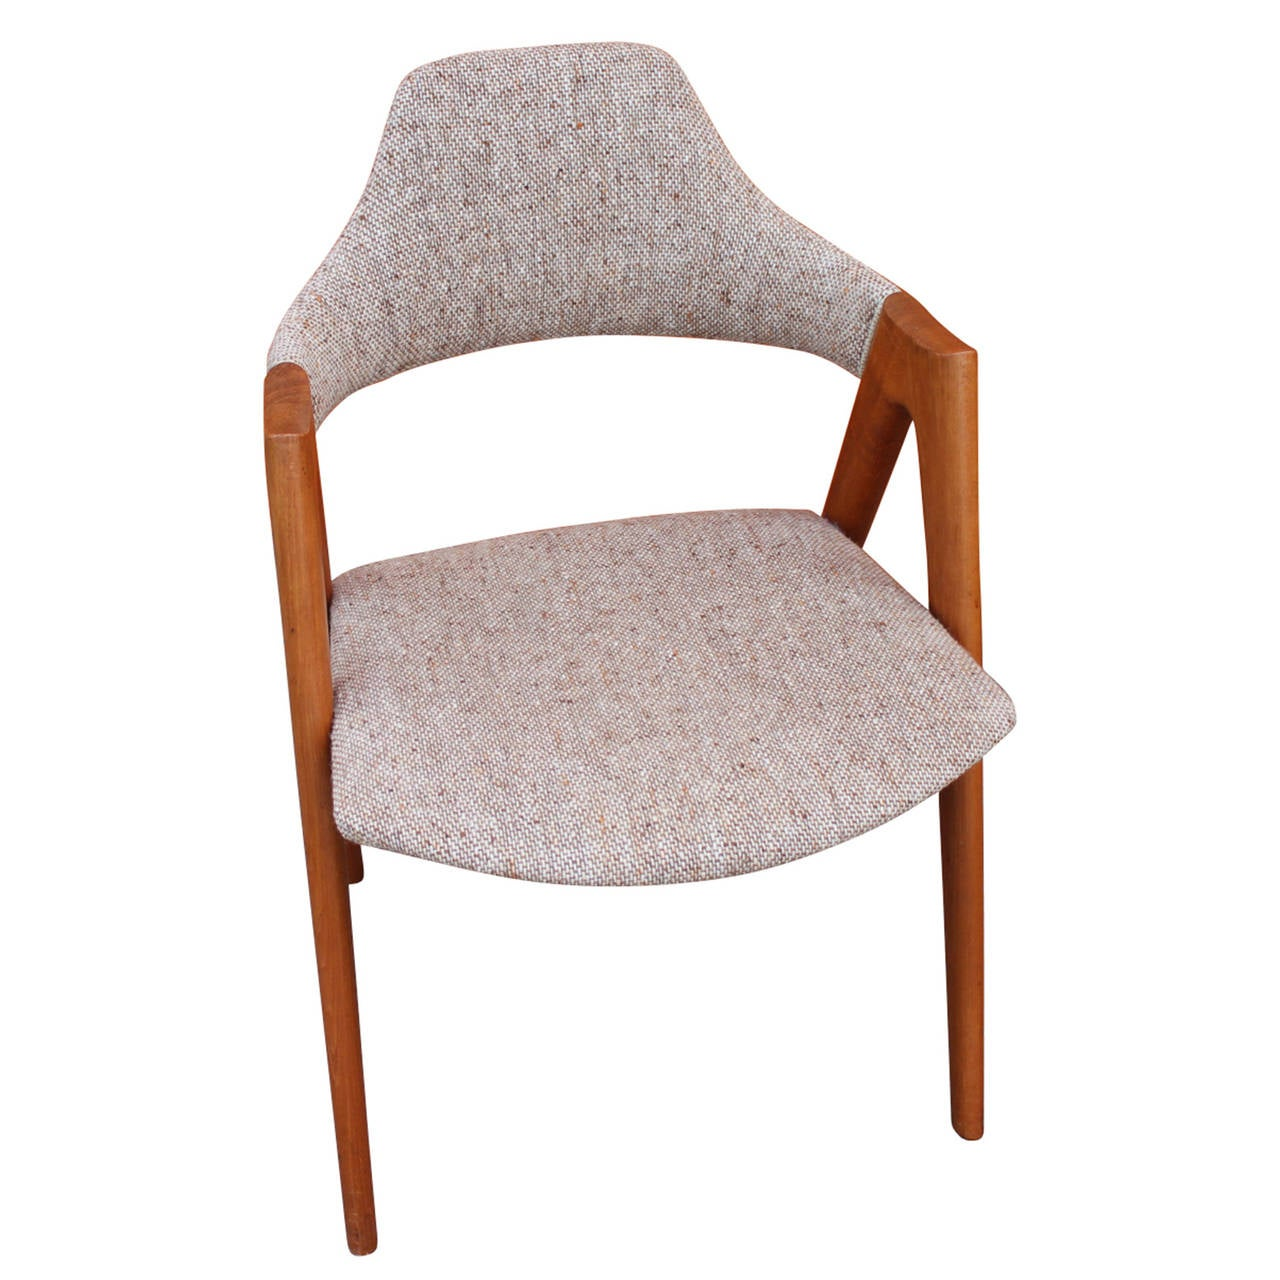 Compass dining chairs by kai kristiansen 1960 1969 at 1stdibs - Kai kristiansen chairs ...